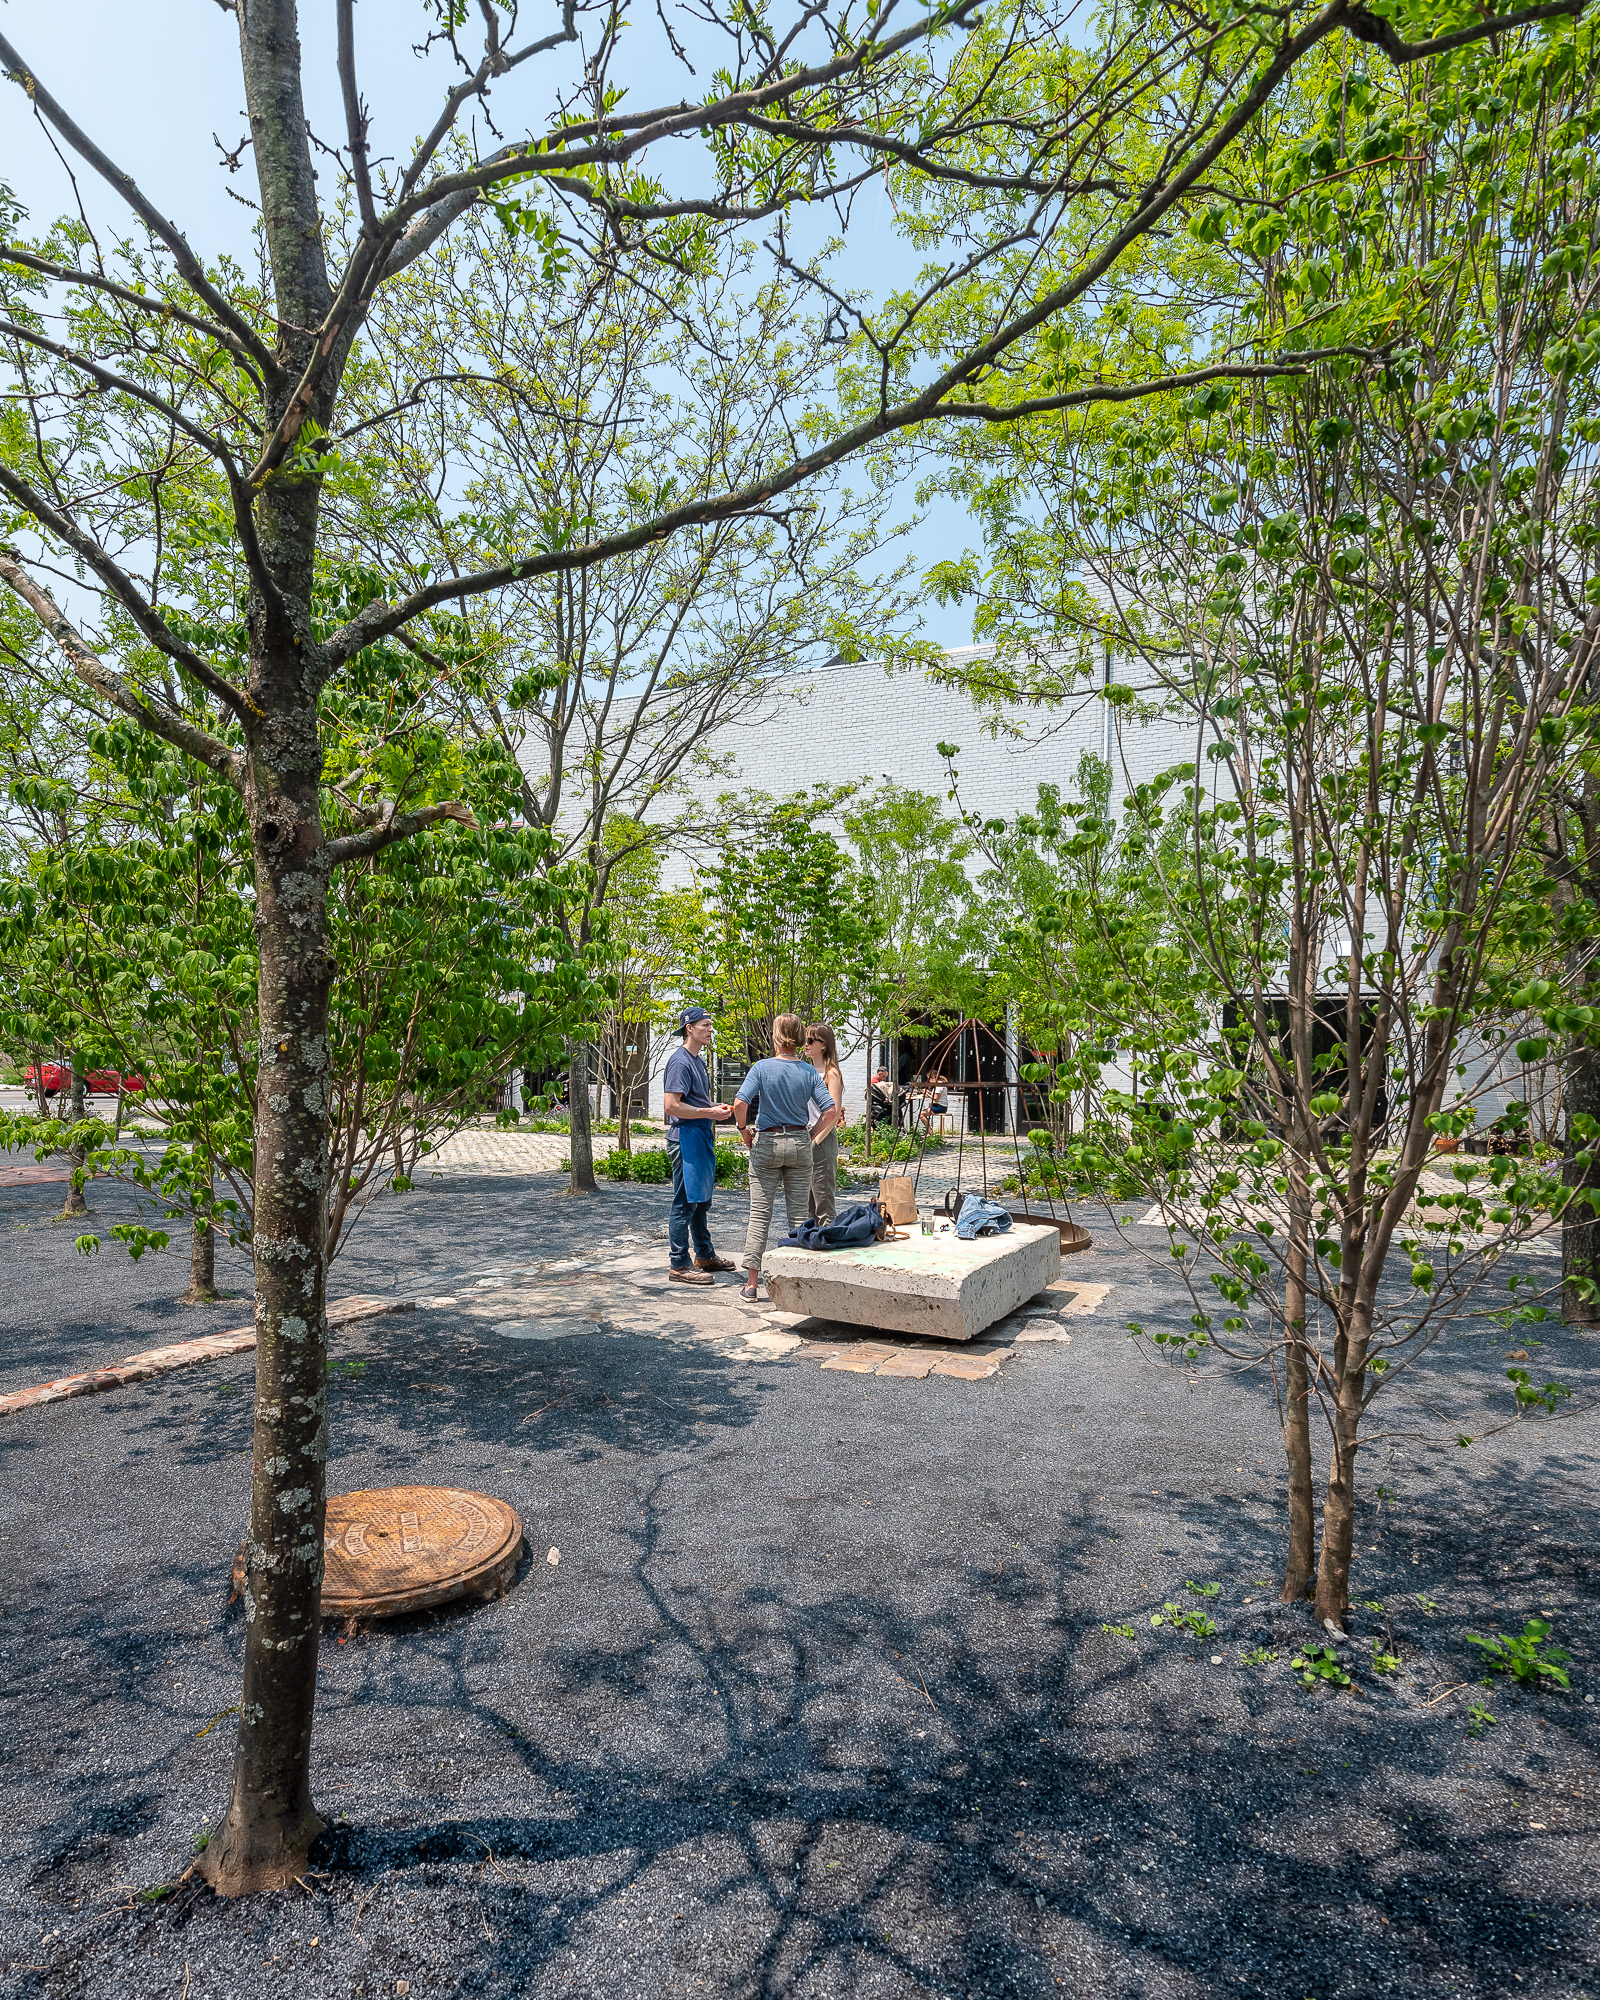 prince_concepts_core_city_park_spring-11.jpg